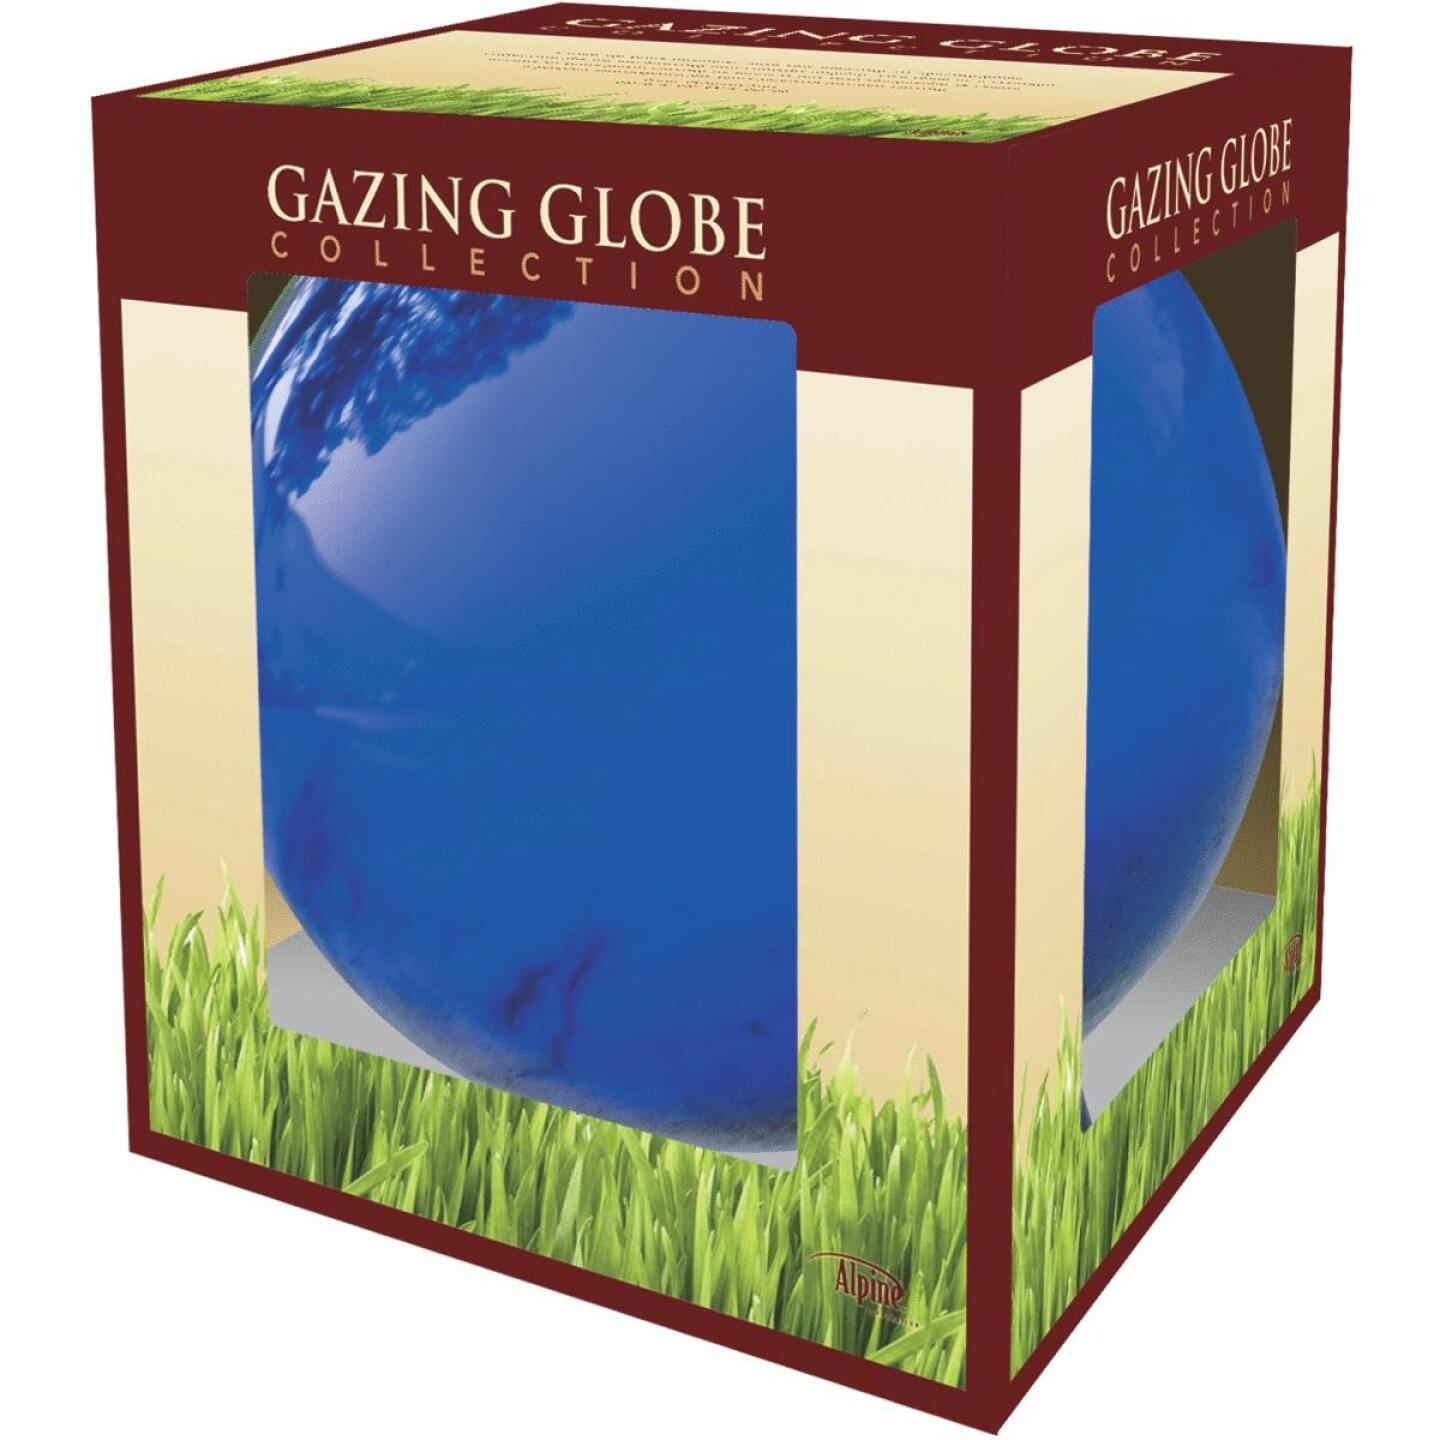 Alpine 12 In. Electric Blue Glass Gazing Globe Lawn Ornament Image 2